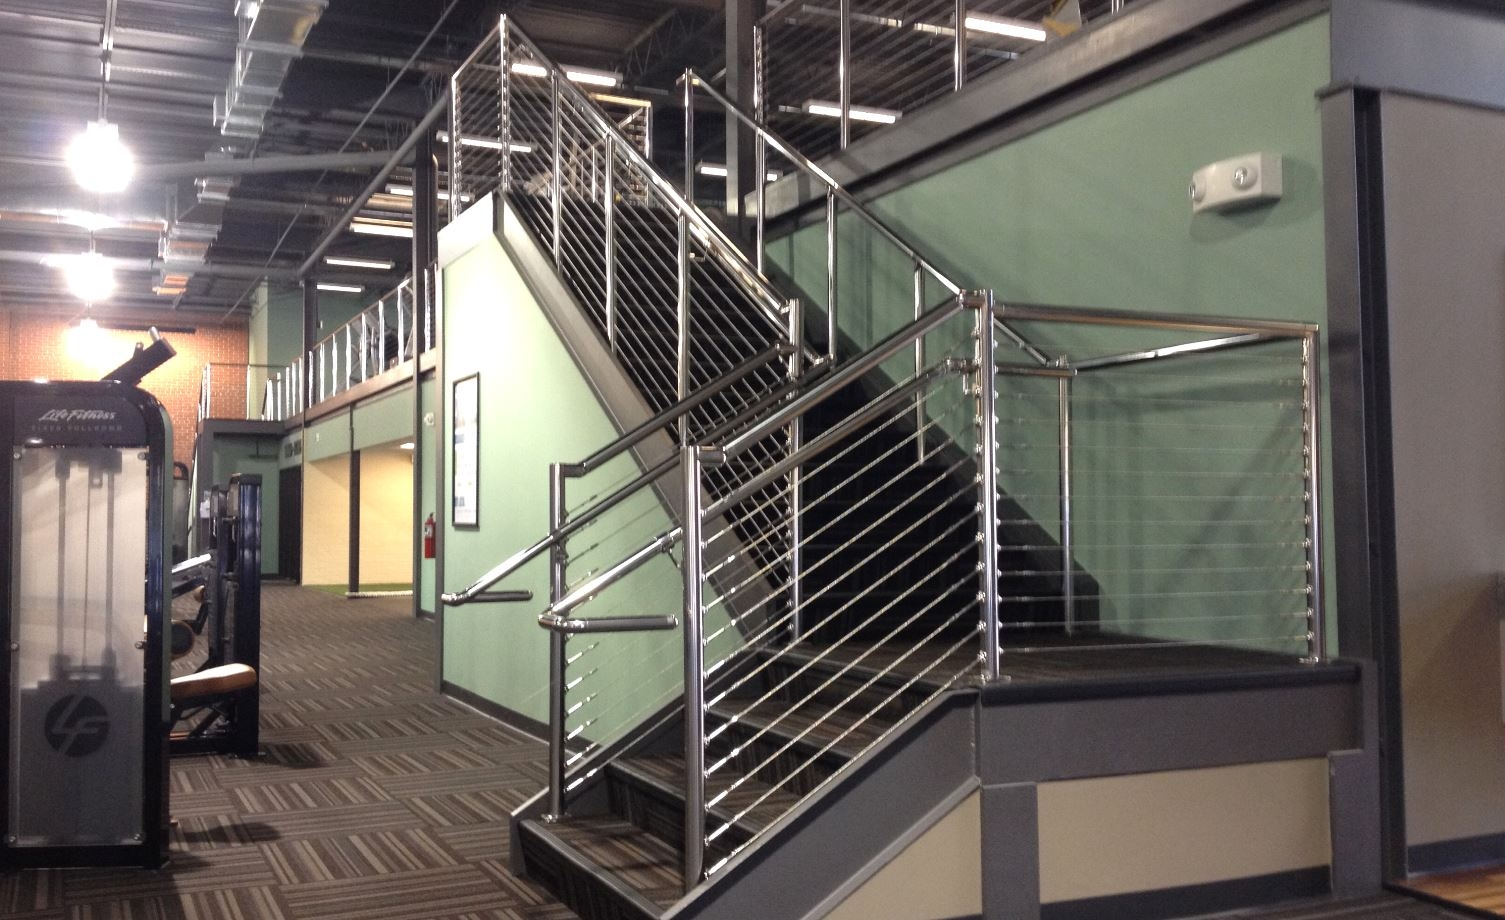 Commercial Stair Railing Stair Solution 6 Stair Solution   Commercial Handrails And Railings   Metal   Wood   Guardrail   Pipe Railing   Stainless Steel Railing